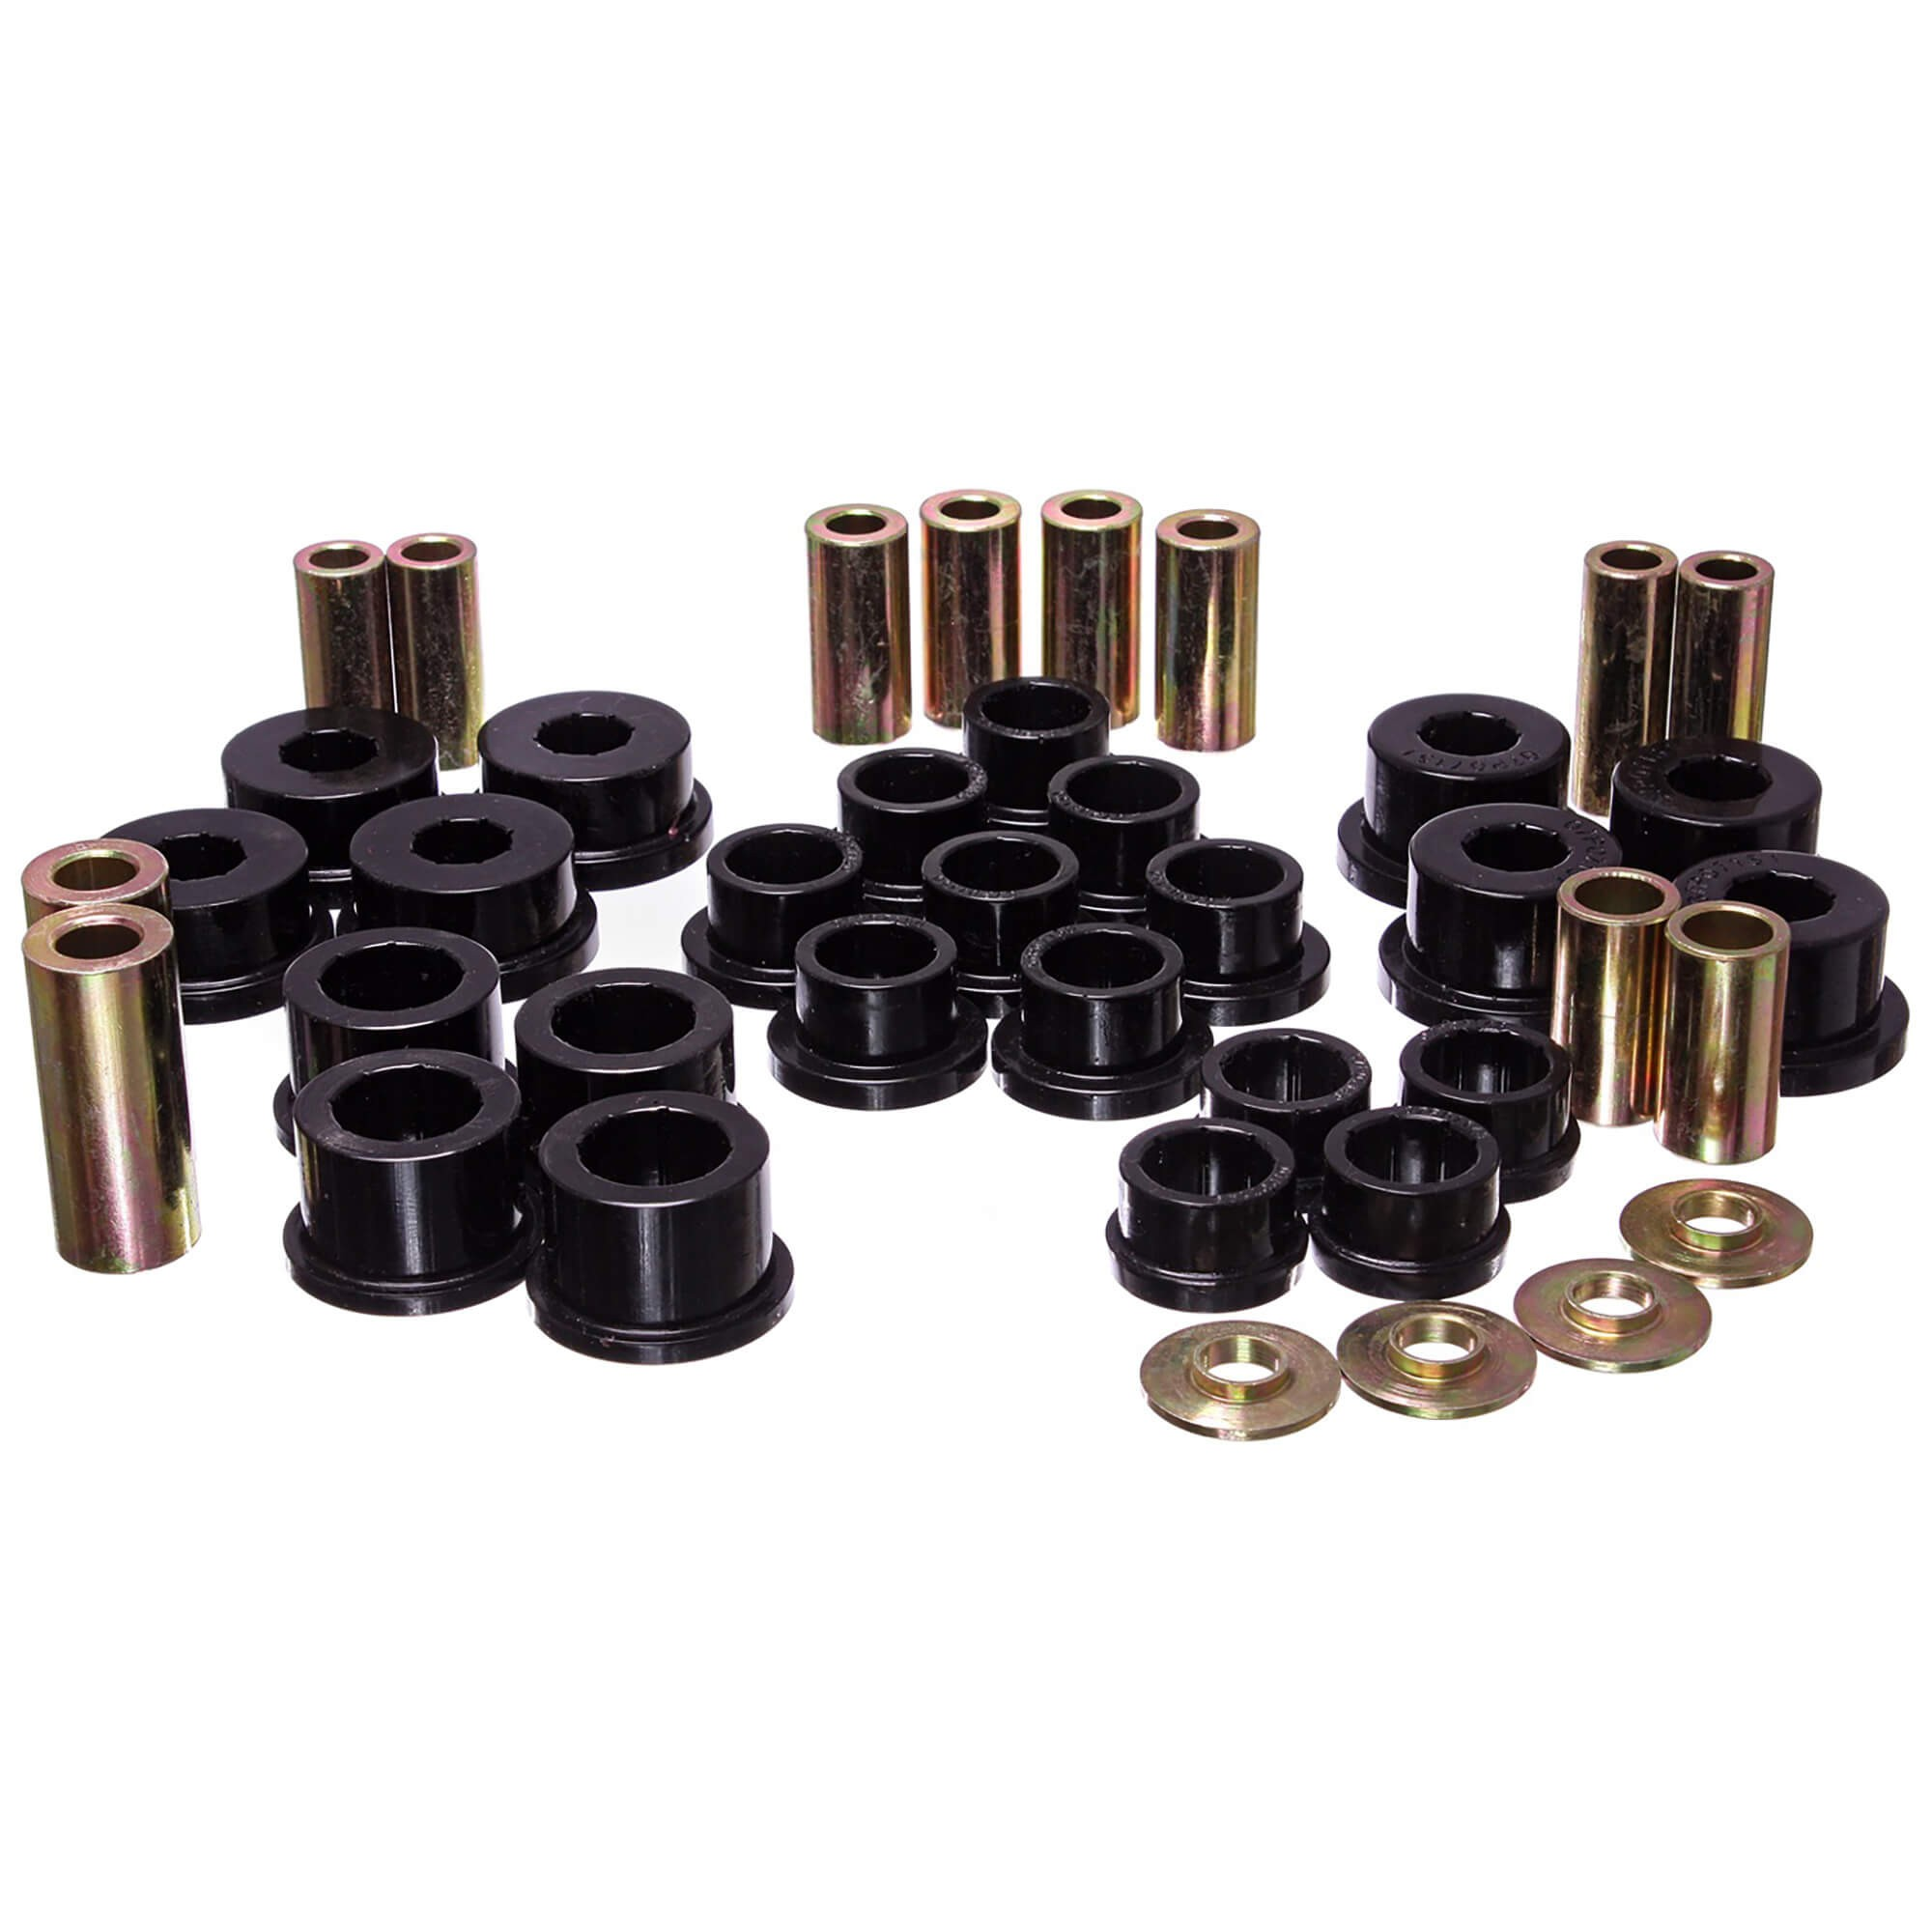 Polyurethane Suspension Bushings >> 910 412 Polyurethane Control Arm Bushings By Energy Suspension